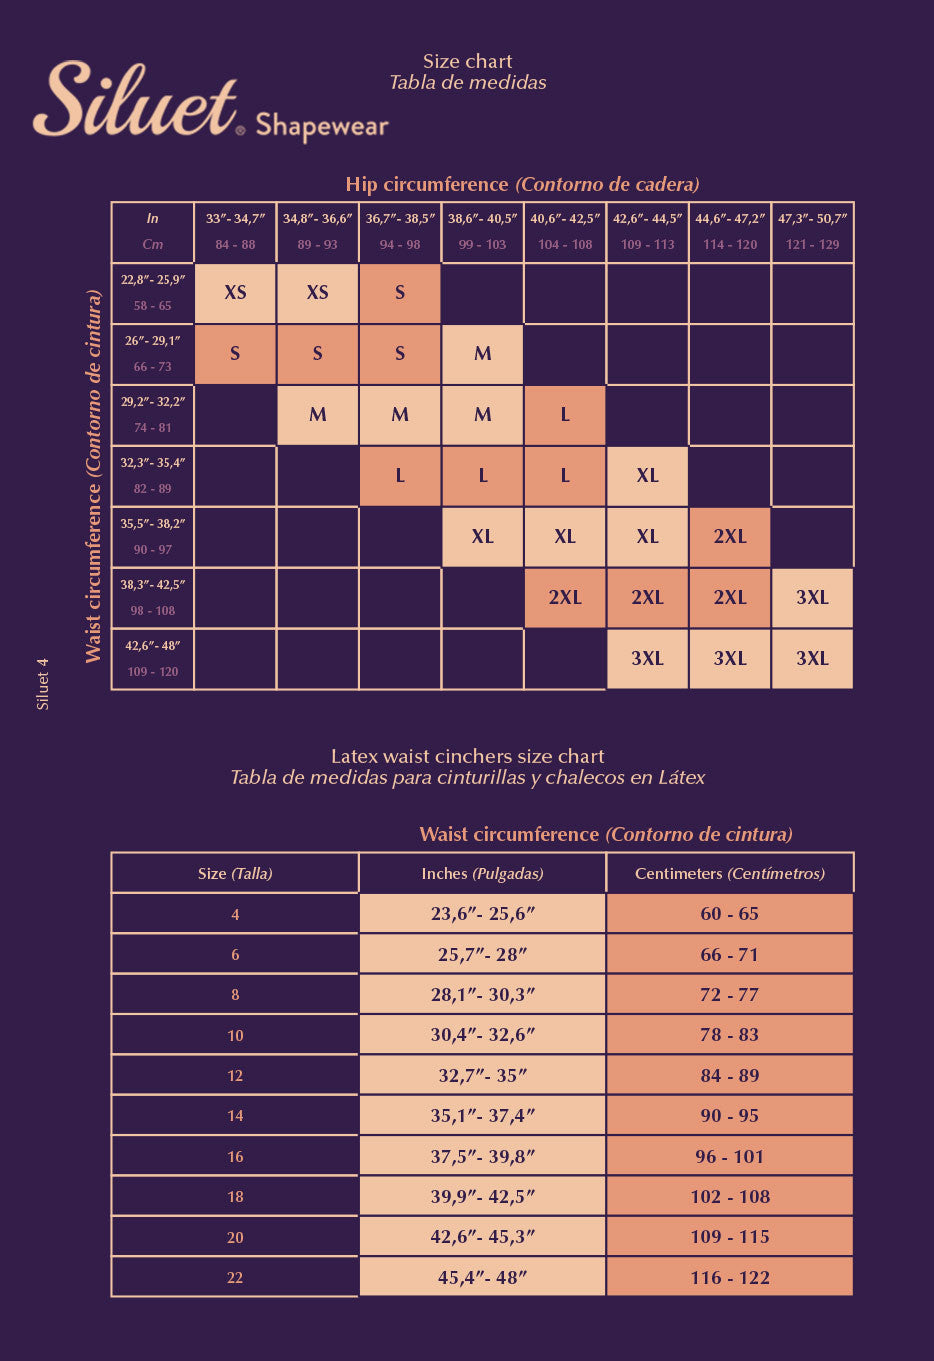 Siluet Size Chart - Shapewear for Women